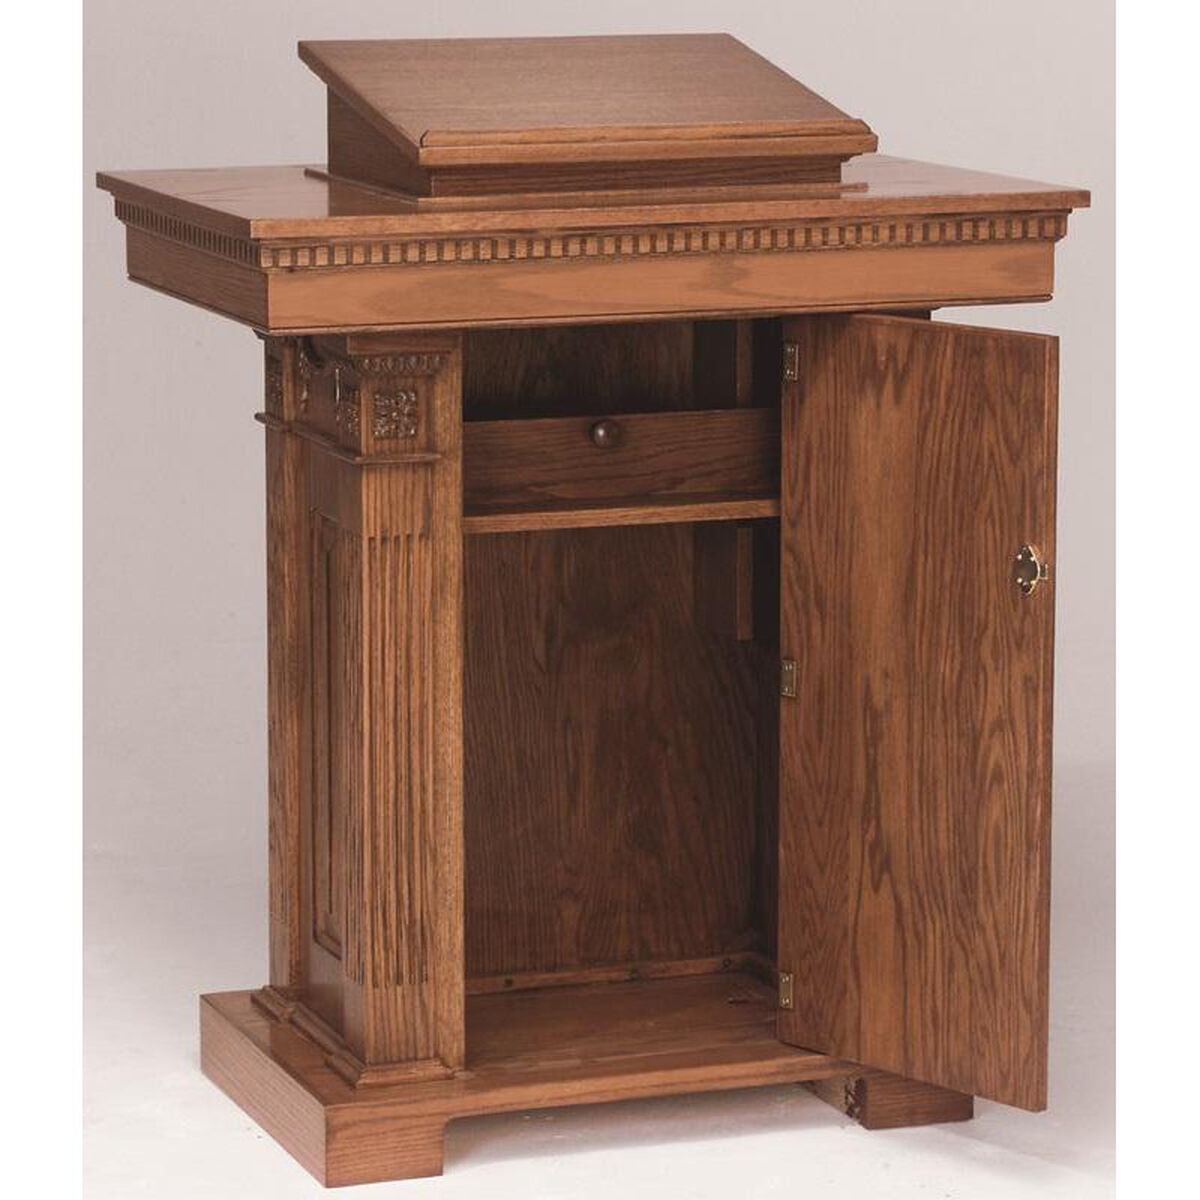 Our Stained Red Oak Pedestal Pulpit With Adjule Rest Is On Now